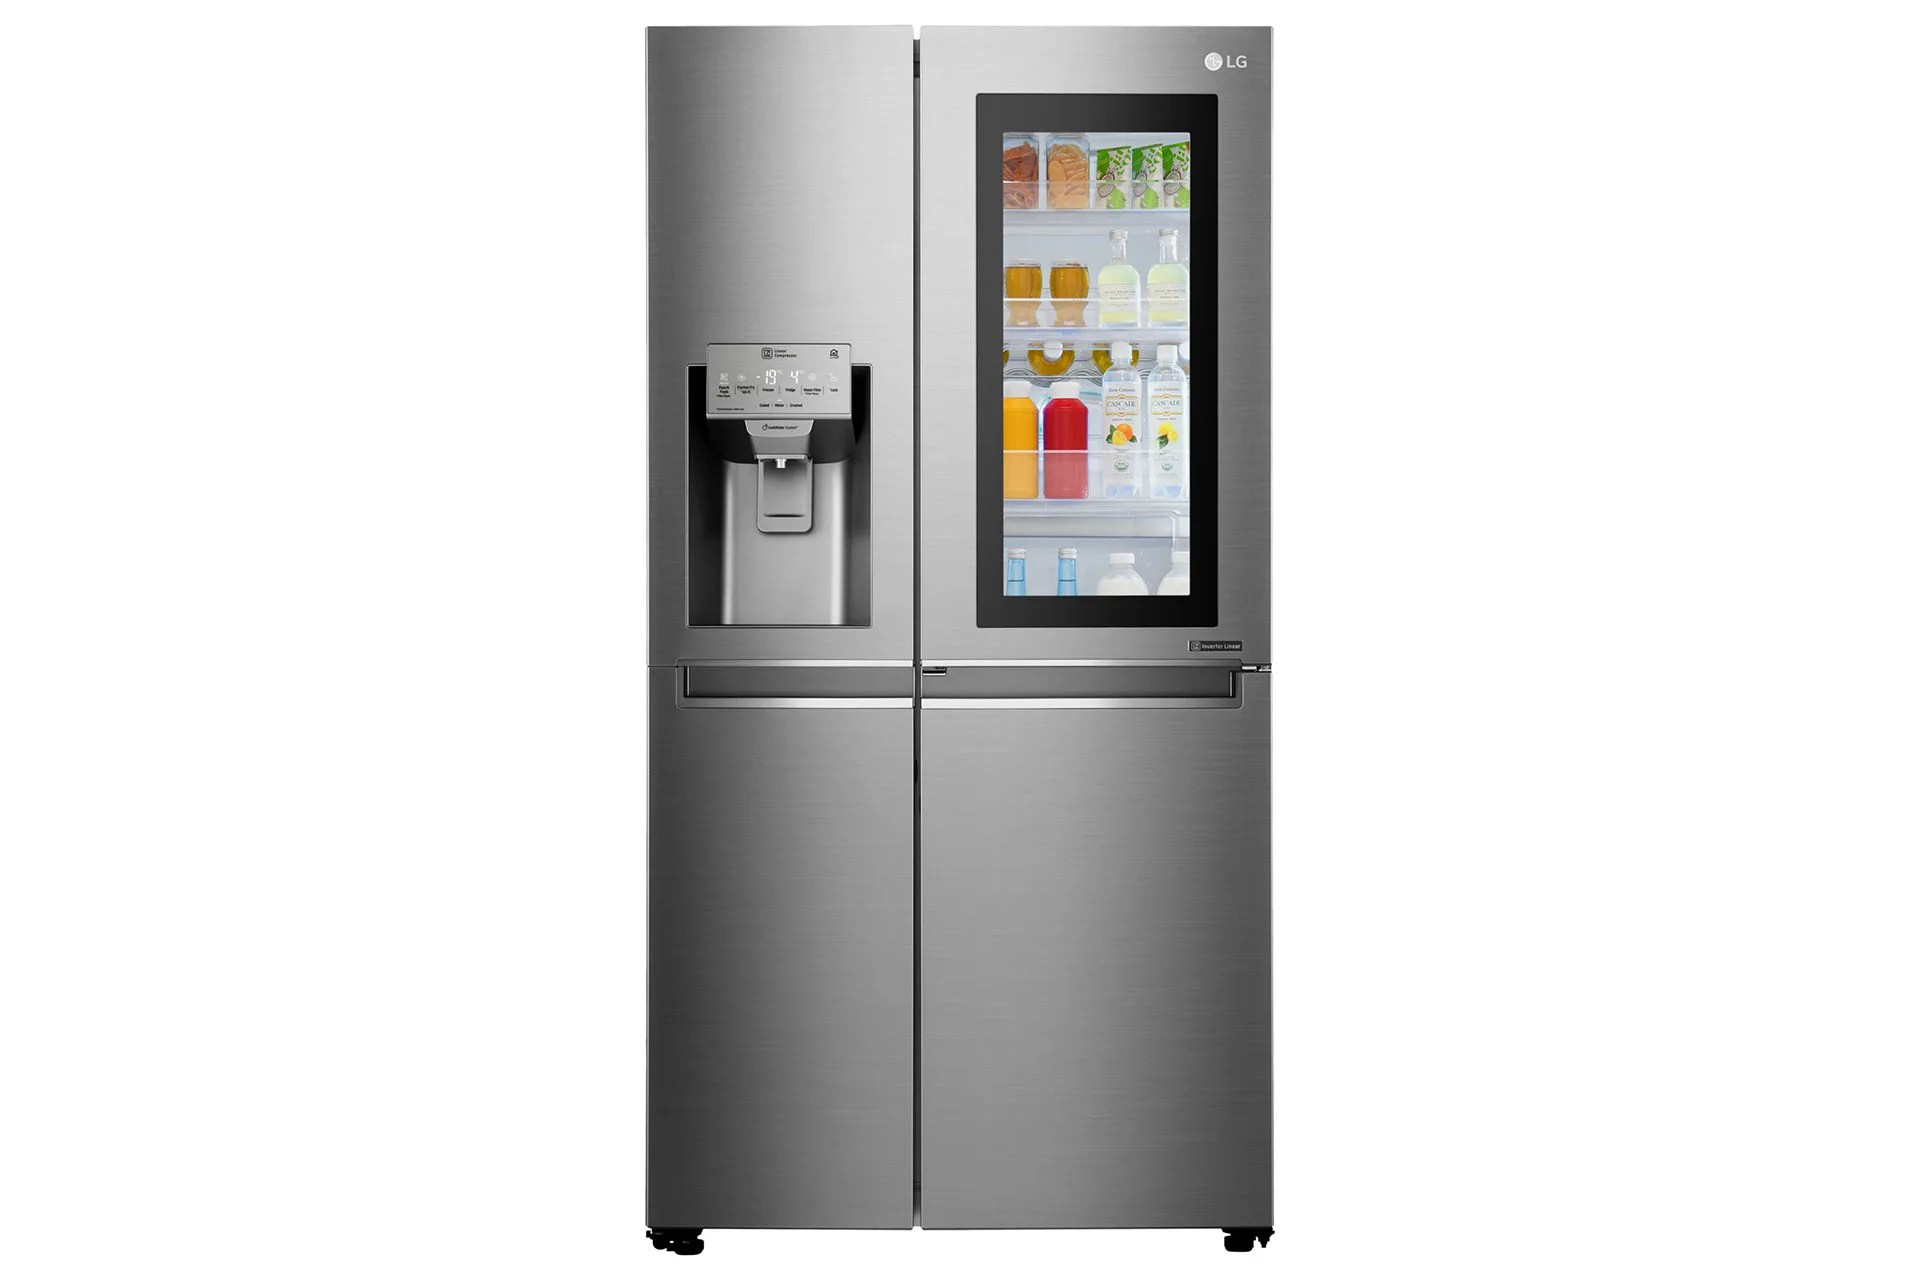 Fridge Freezer Best Fridge Freezer 2019 Make Your Food Last Longer Trusted Reviews